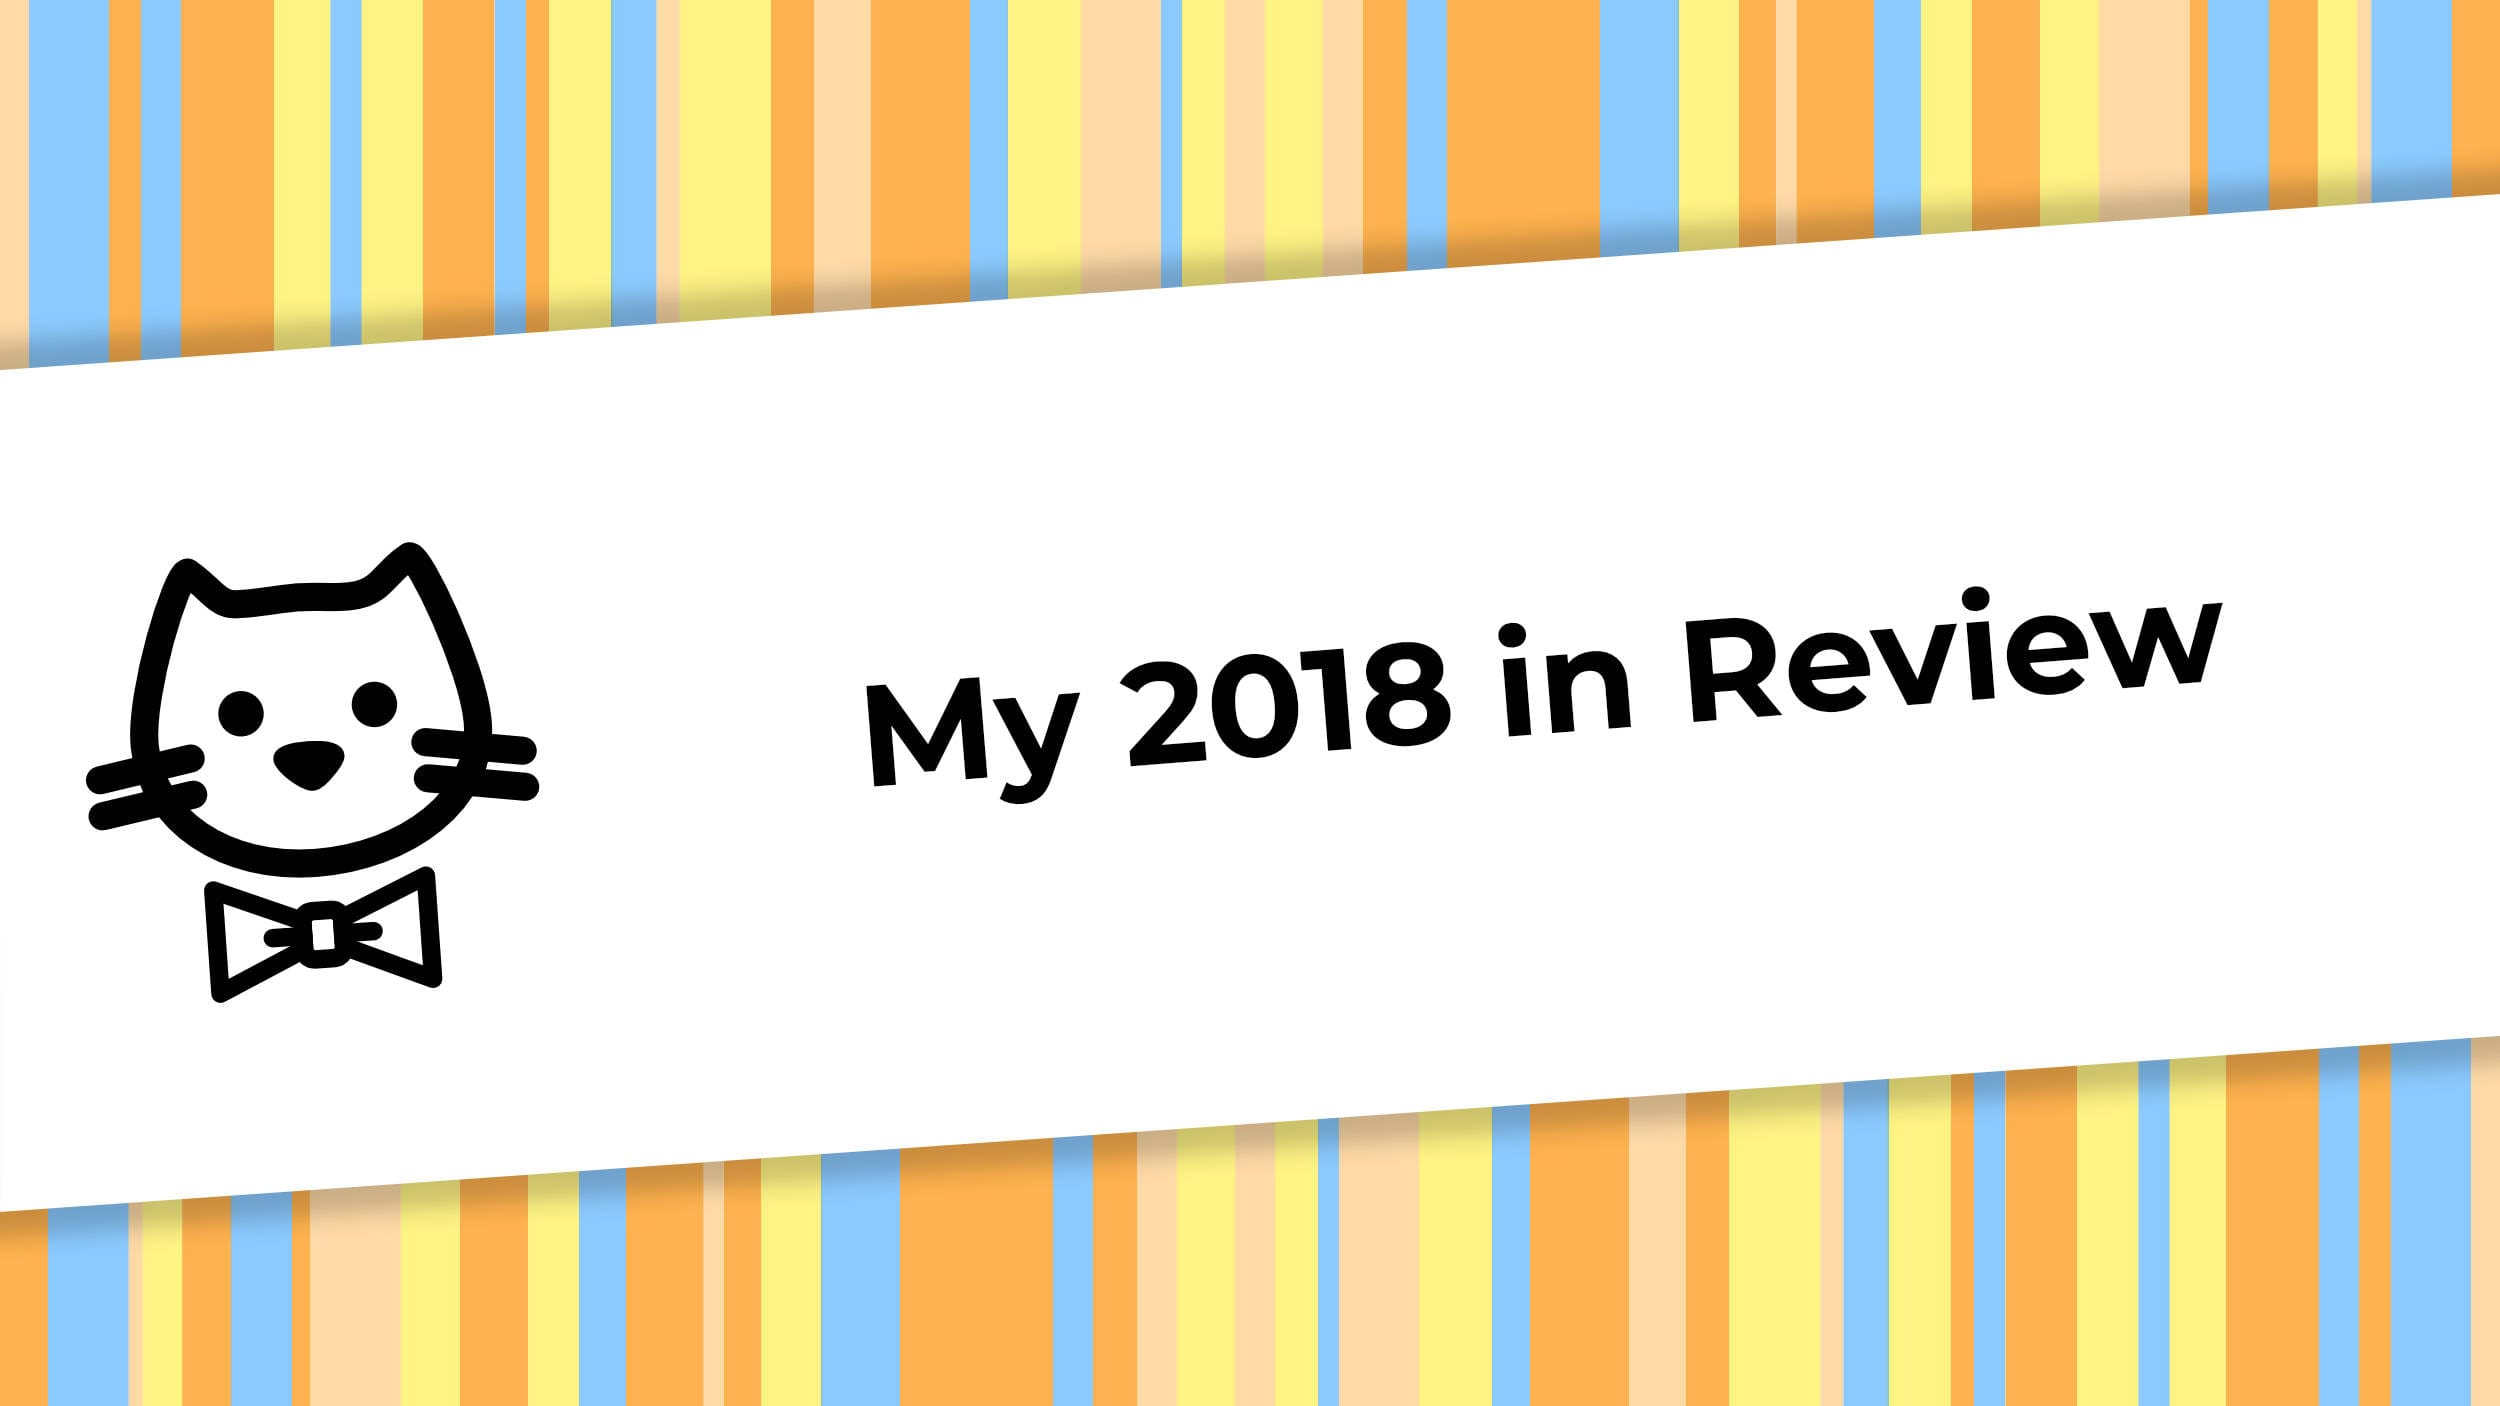 My 2018 in Review.jpg